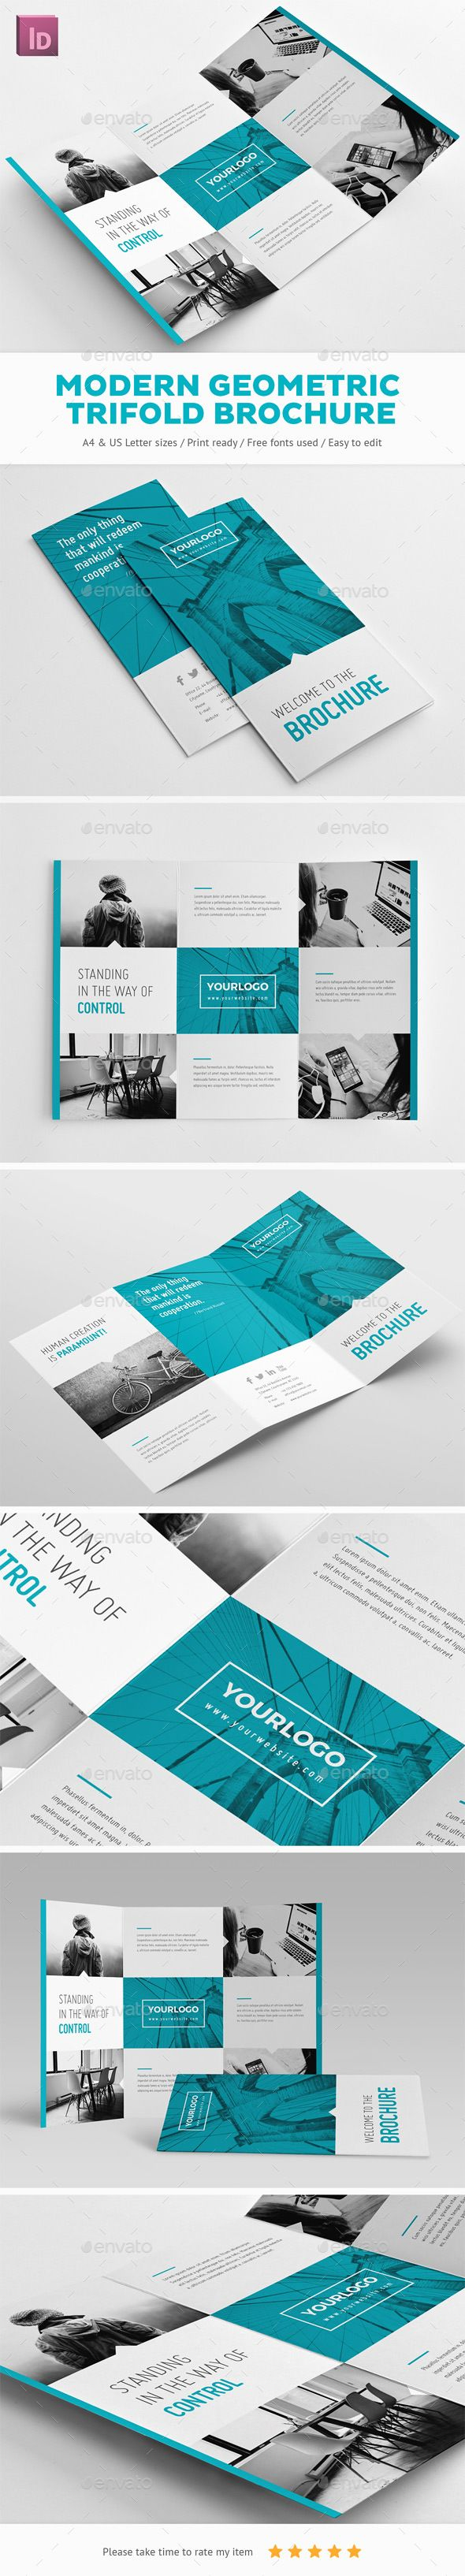 Modern Geometric Trifold Brochure Design - Brochures Print Template InDesign INDD. Download here: http://graphicriver.net/item/modern-geometric-trifold-brochure/16880123?ref=yinkira